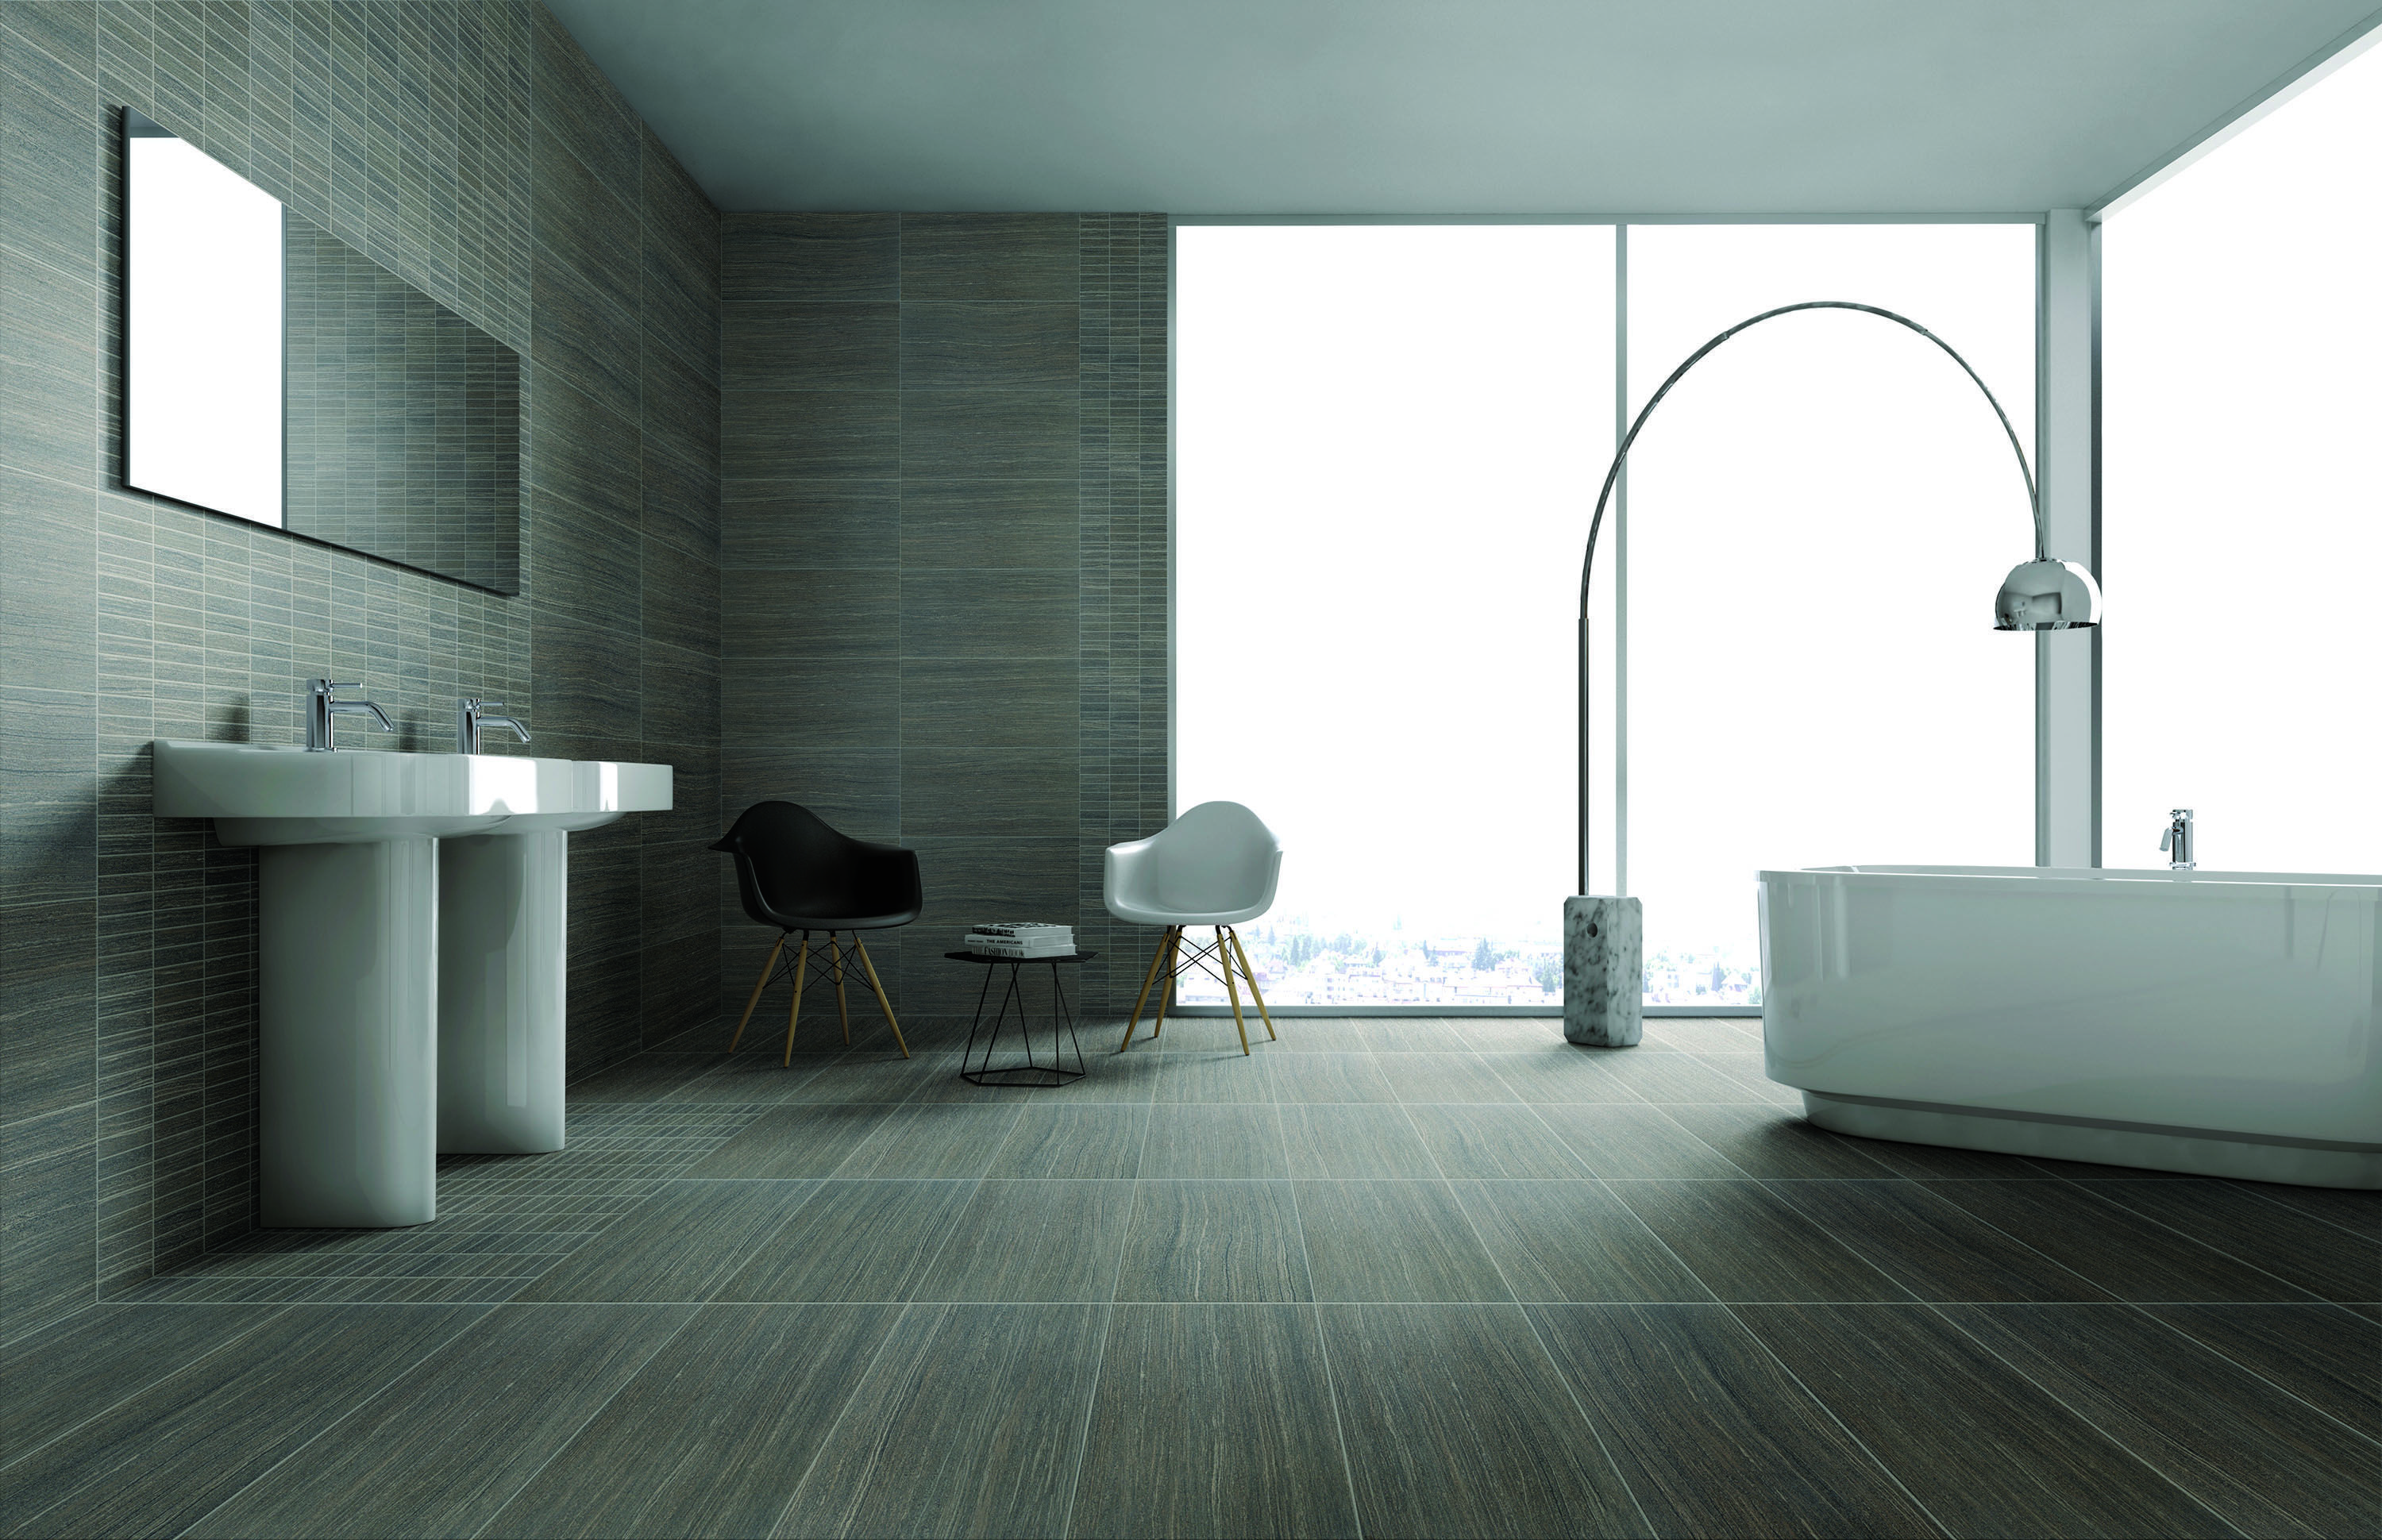 Design Your Bathroom With Wood Look Porcelain Tile Tile Porcelain